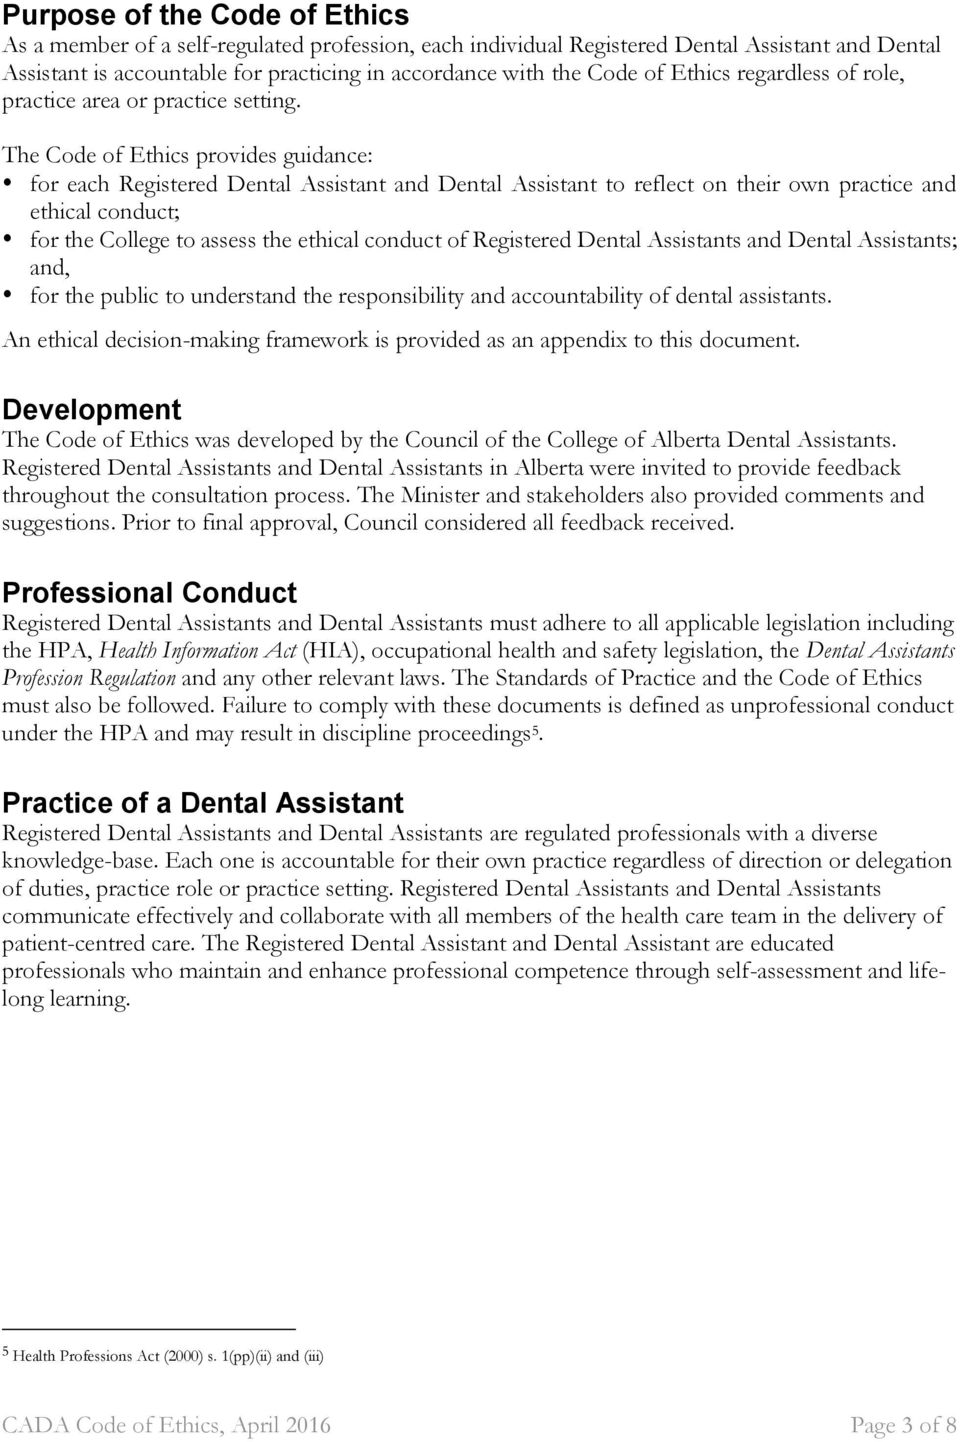 The Code of Ethics provides guidance: for each Registered Dental Assistant and Dental Assistant to reflect on their own practice and ethical conduct; for the College to assess the ethical conduct of